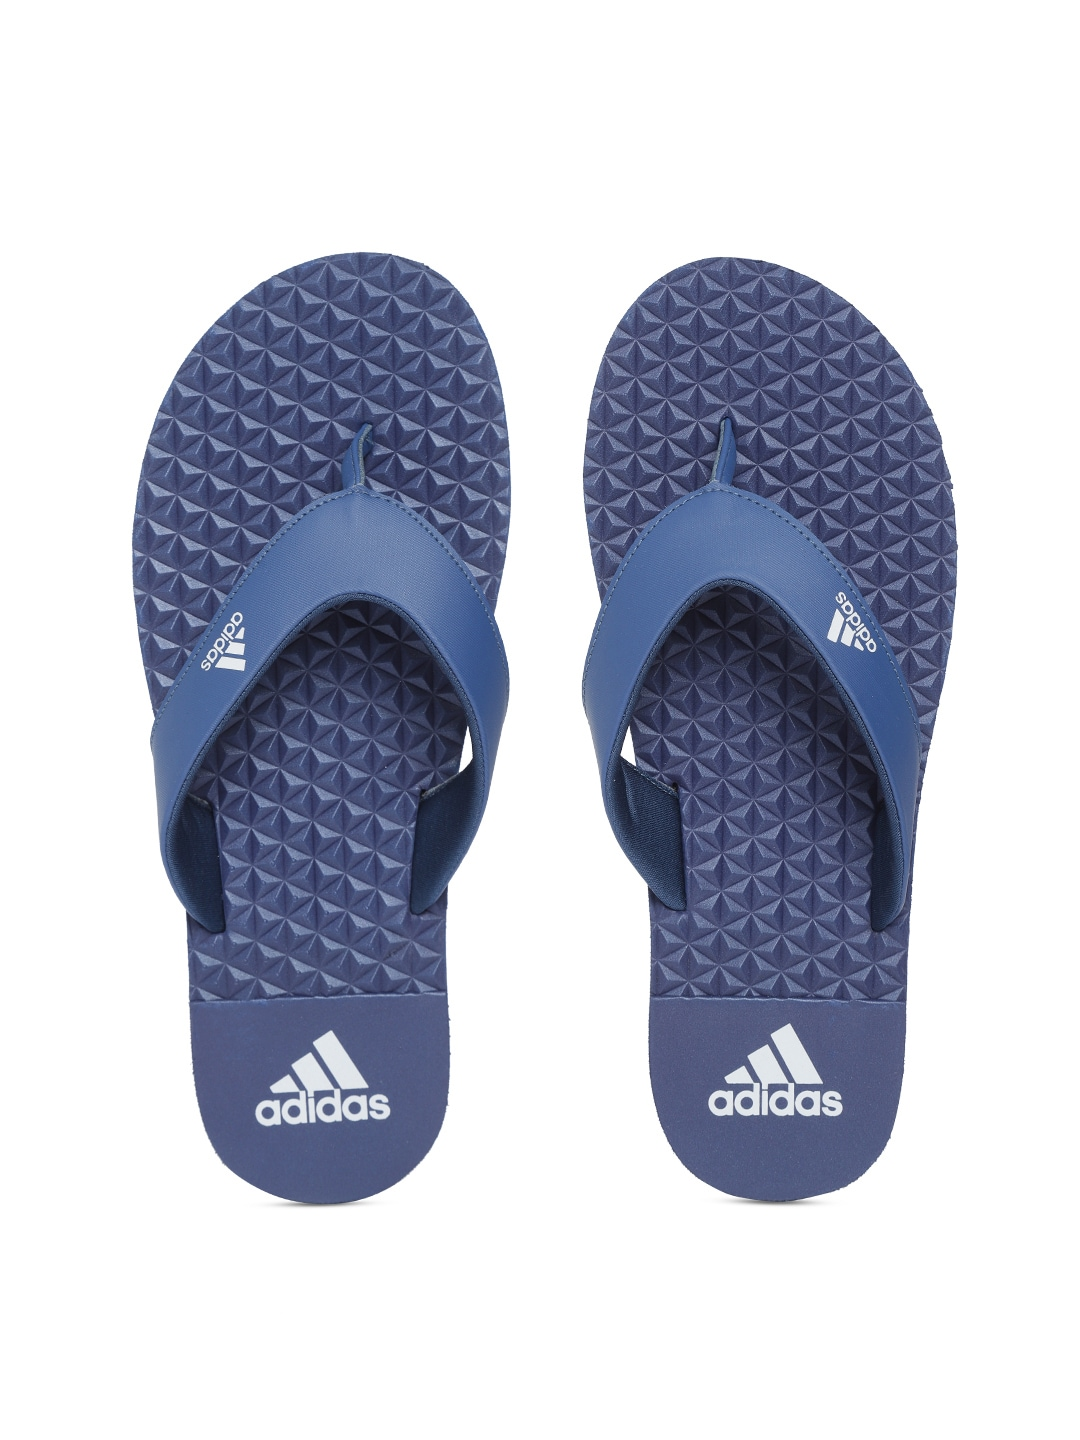 34c01bb5d631 Adidas Slippers - Buy Adidas Slipper   Flip Flops Online India